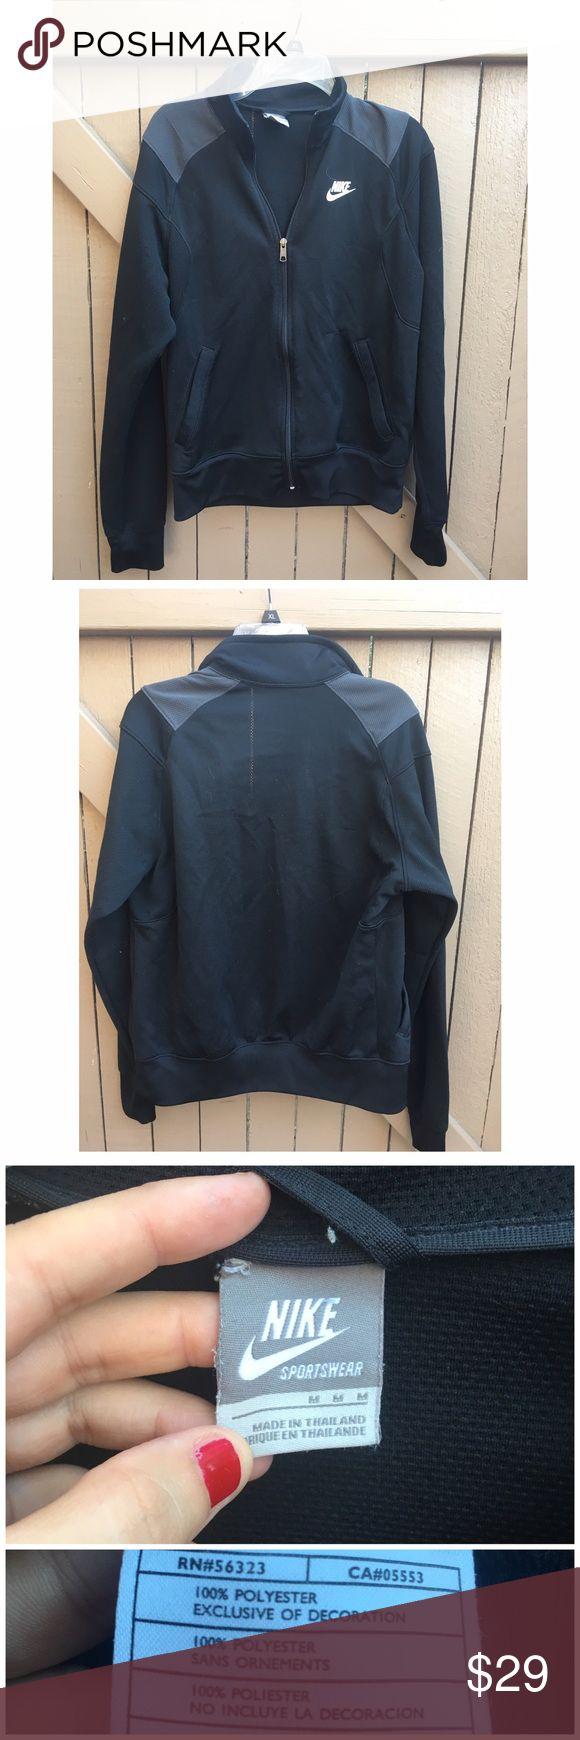 Nike track jacket Perfect for working out or for running errands during the day. It is in very good conditions . No heavy signs of wear. Nike Jackets & Coats